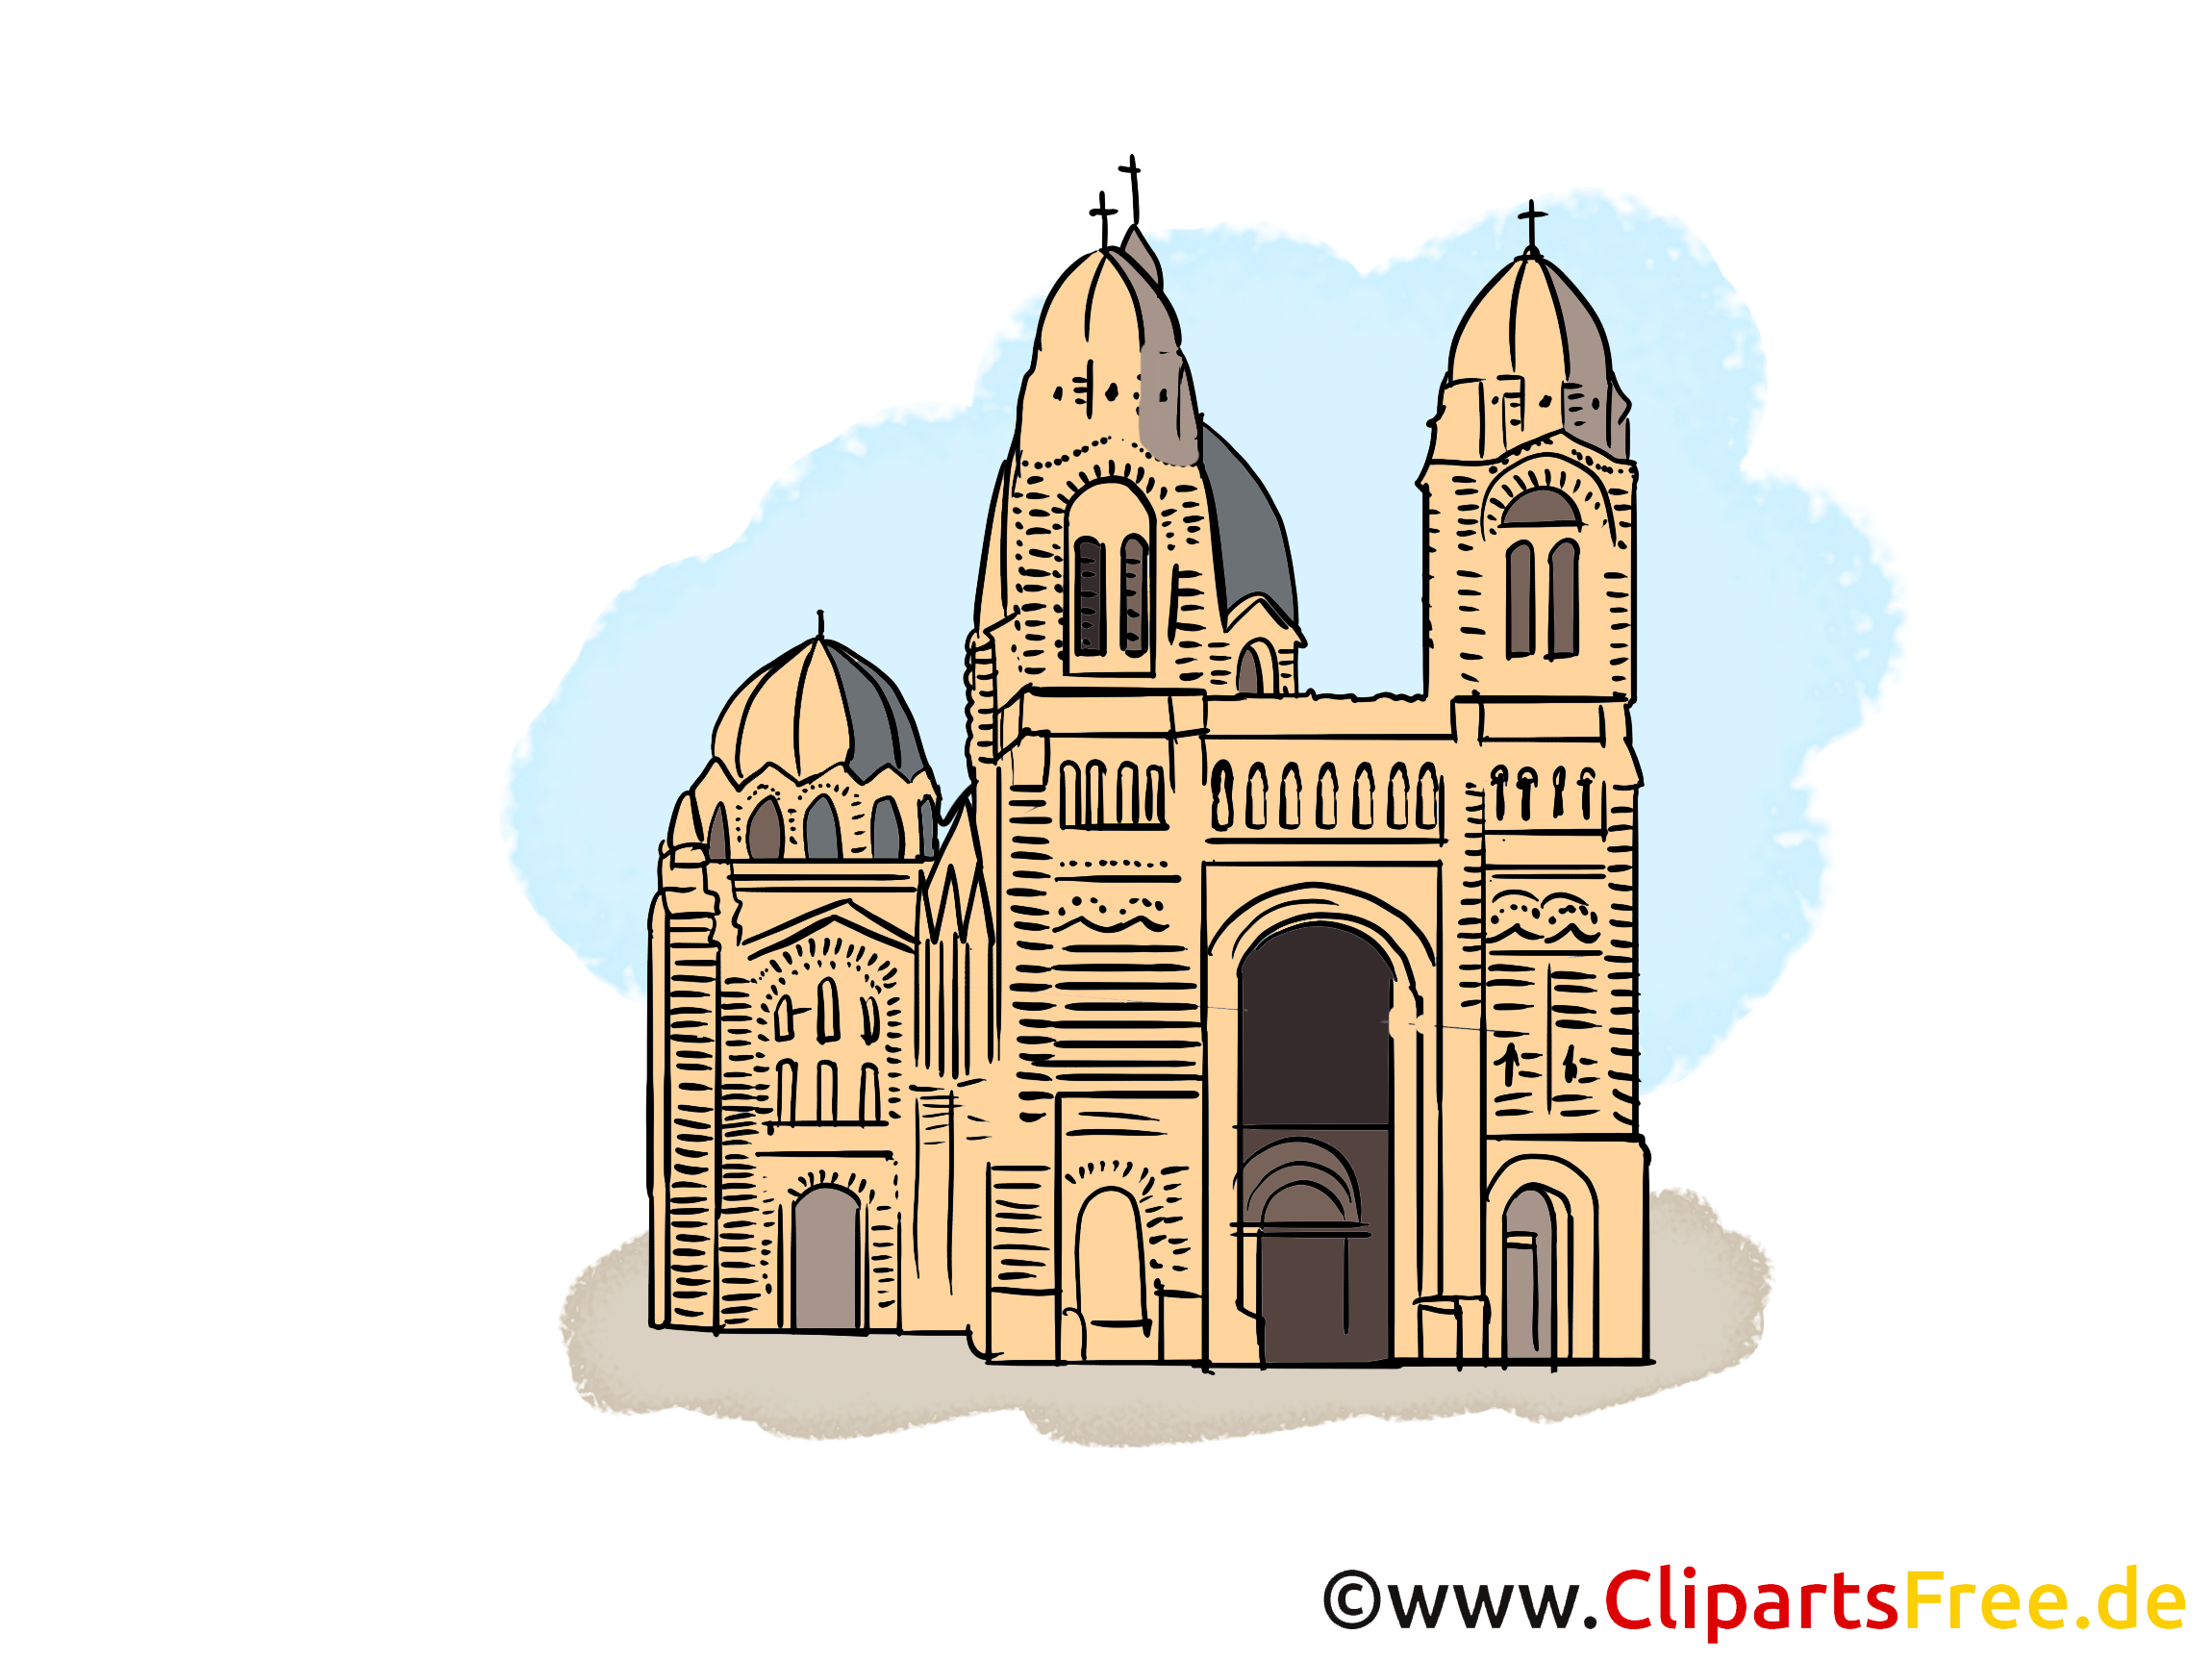 Église clip arts gratuits - Cathédrale illustrations